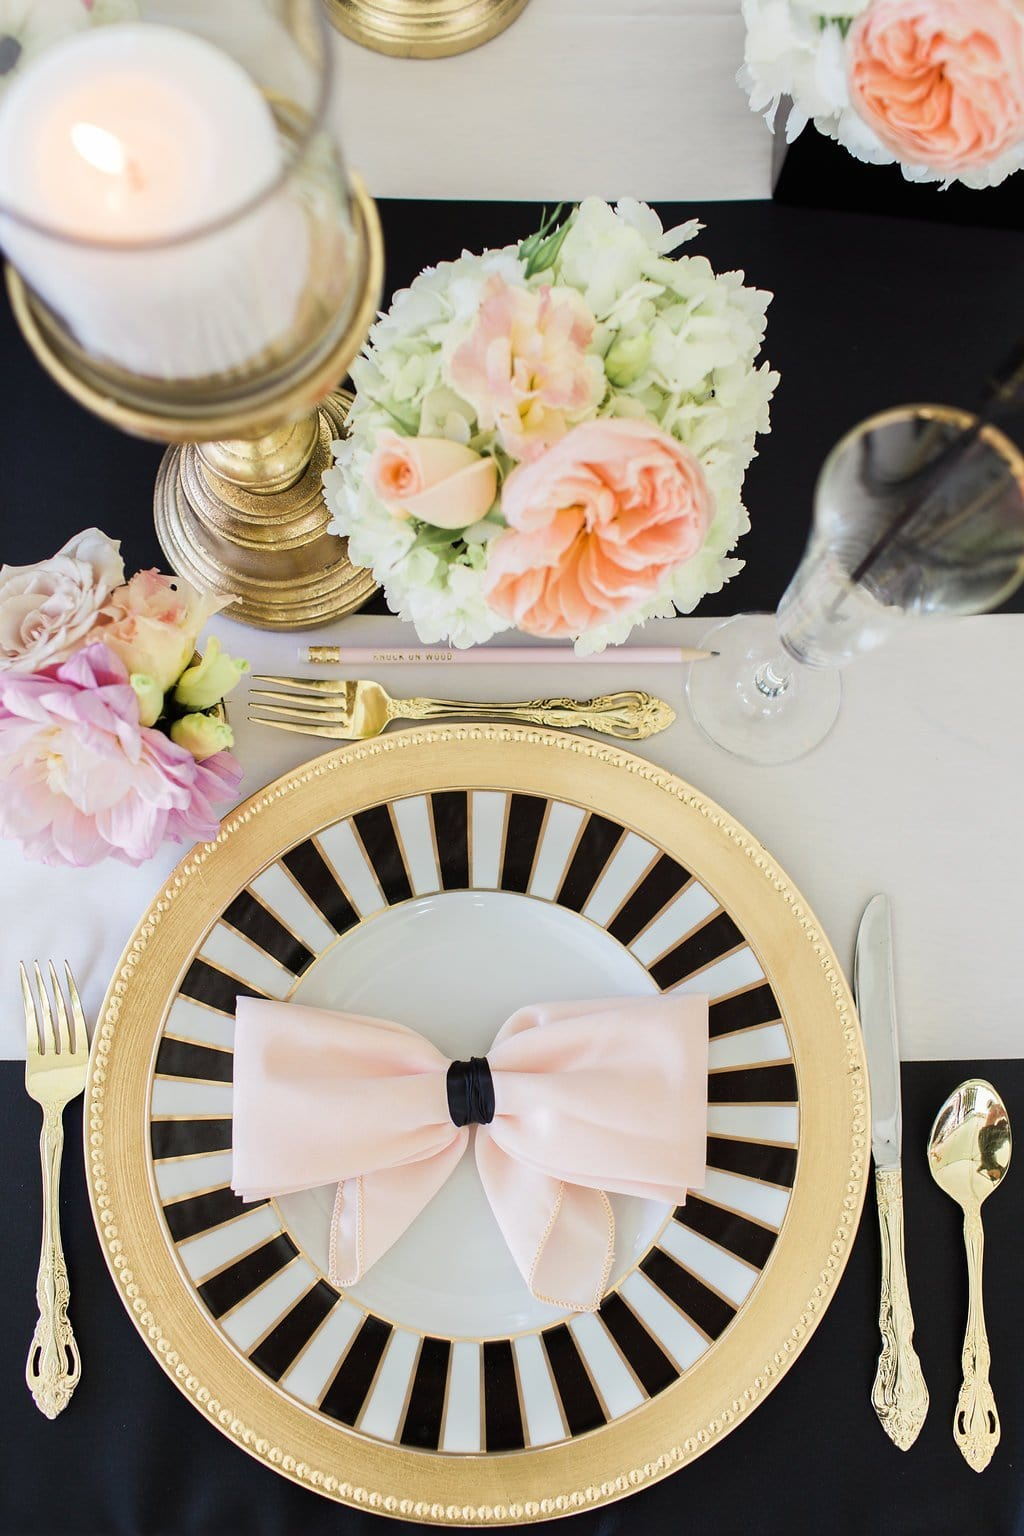 place setting with candles and flowers with black and white kate spade plate and gold accents - Black & White Kate Spade Inspired Bridal Shower